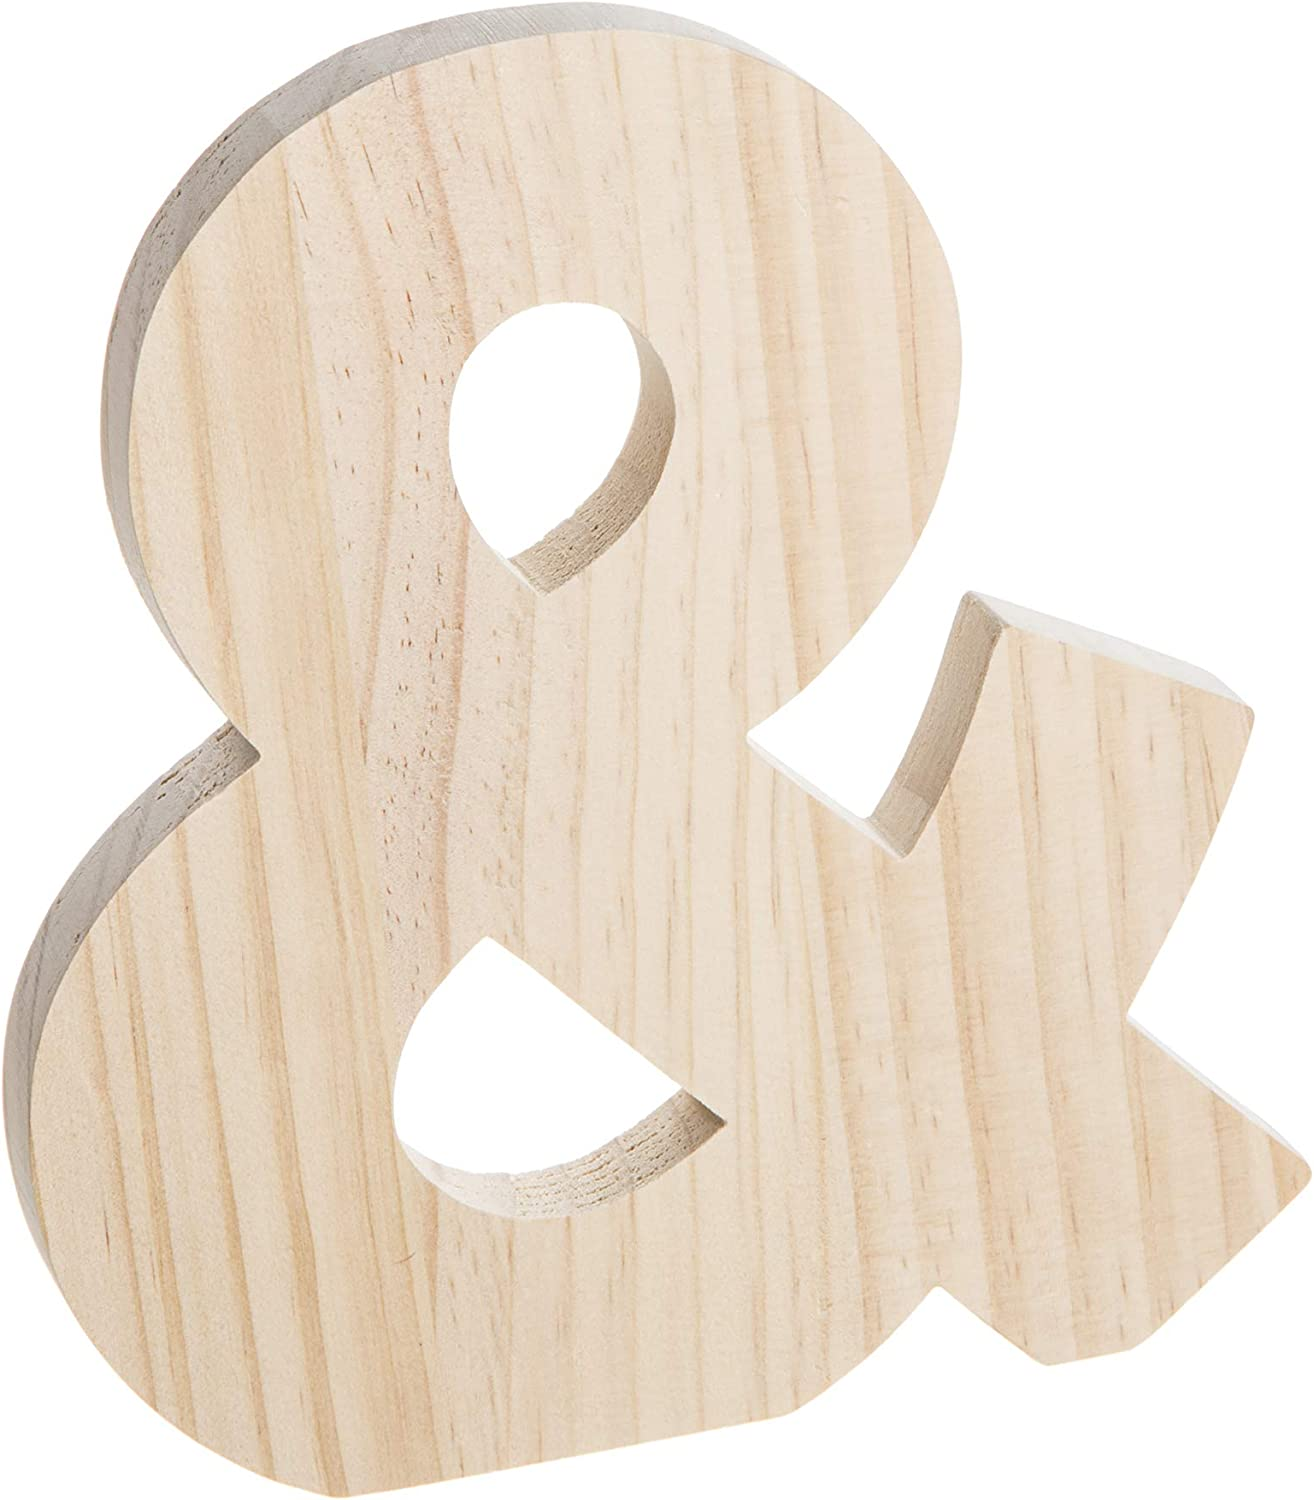 Darice Unfinished Wood Fashion Ampersand: x 8 inches Over item handling